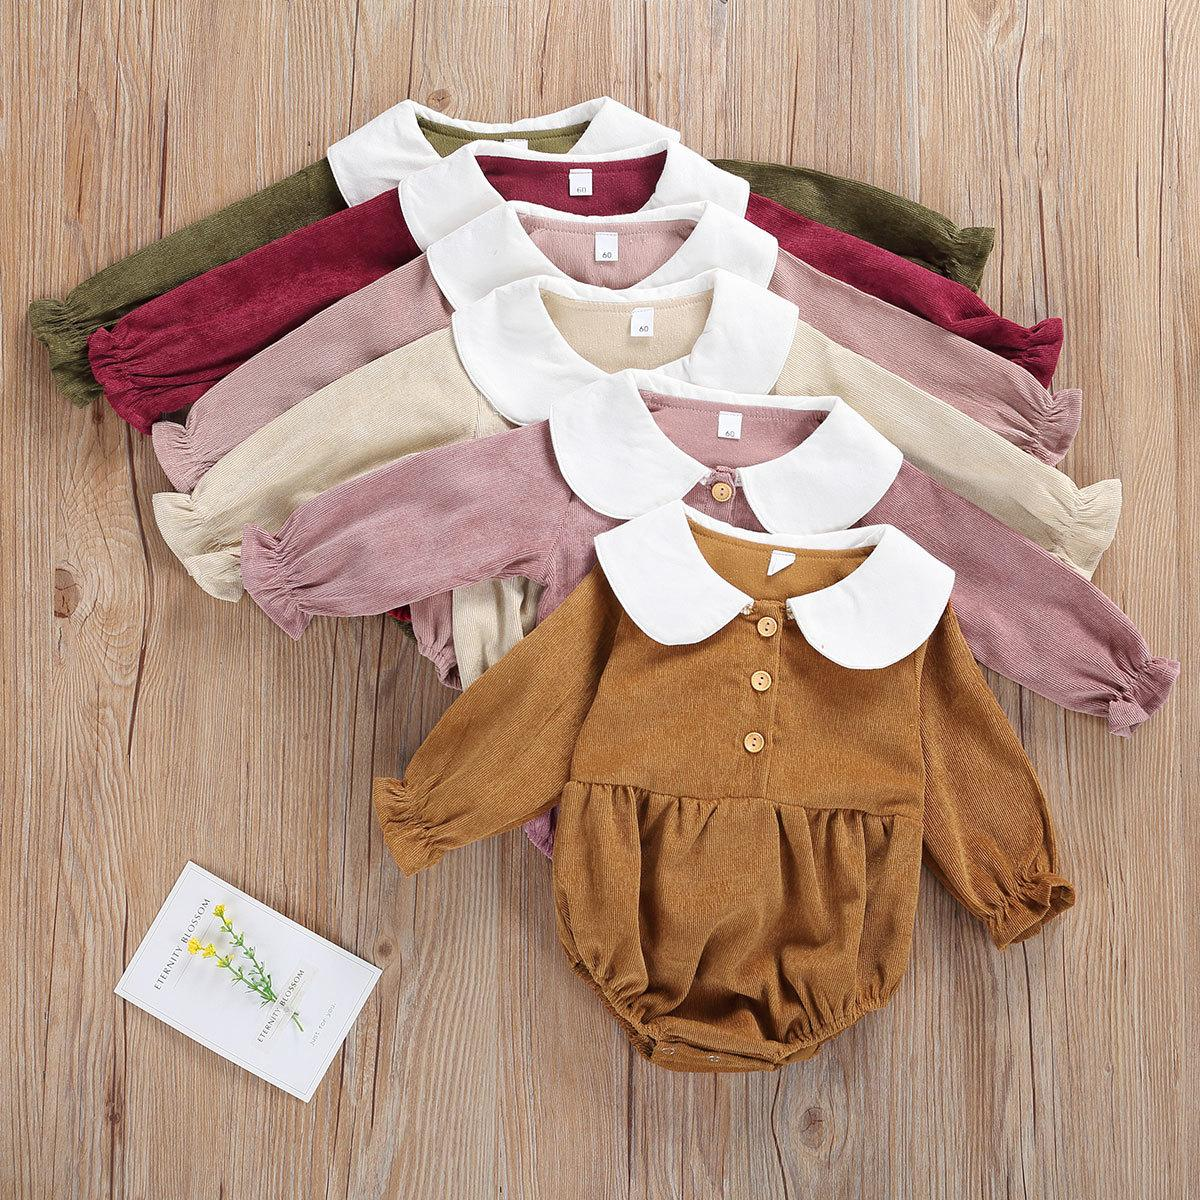 Ma&Baby 0-12M Newborn Infant Baby Girl Romper Corduroy Peter Pan Collar Jumpsuit Autumn vintage Baby Girl Clothes Z1121